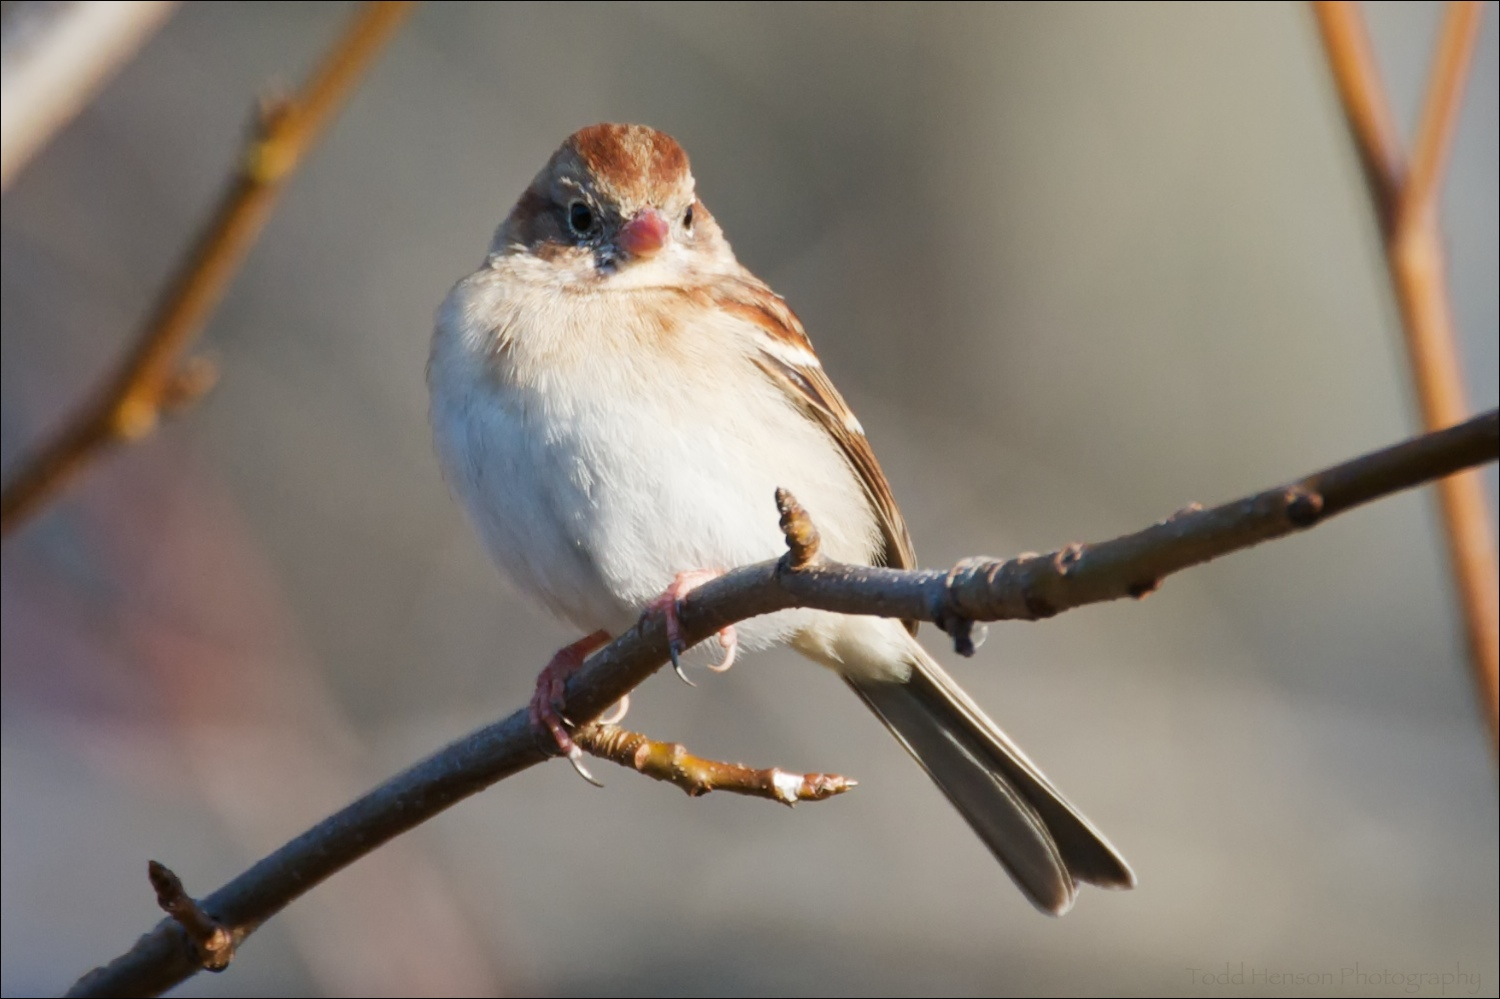 Field Sparrow, note the pinkish bill